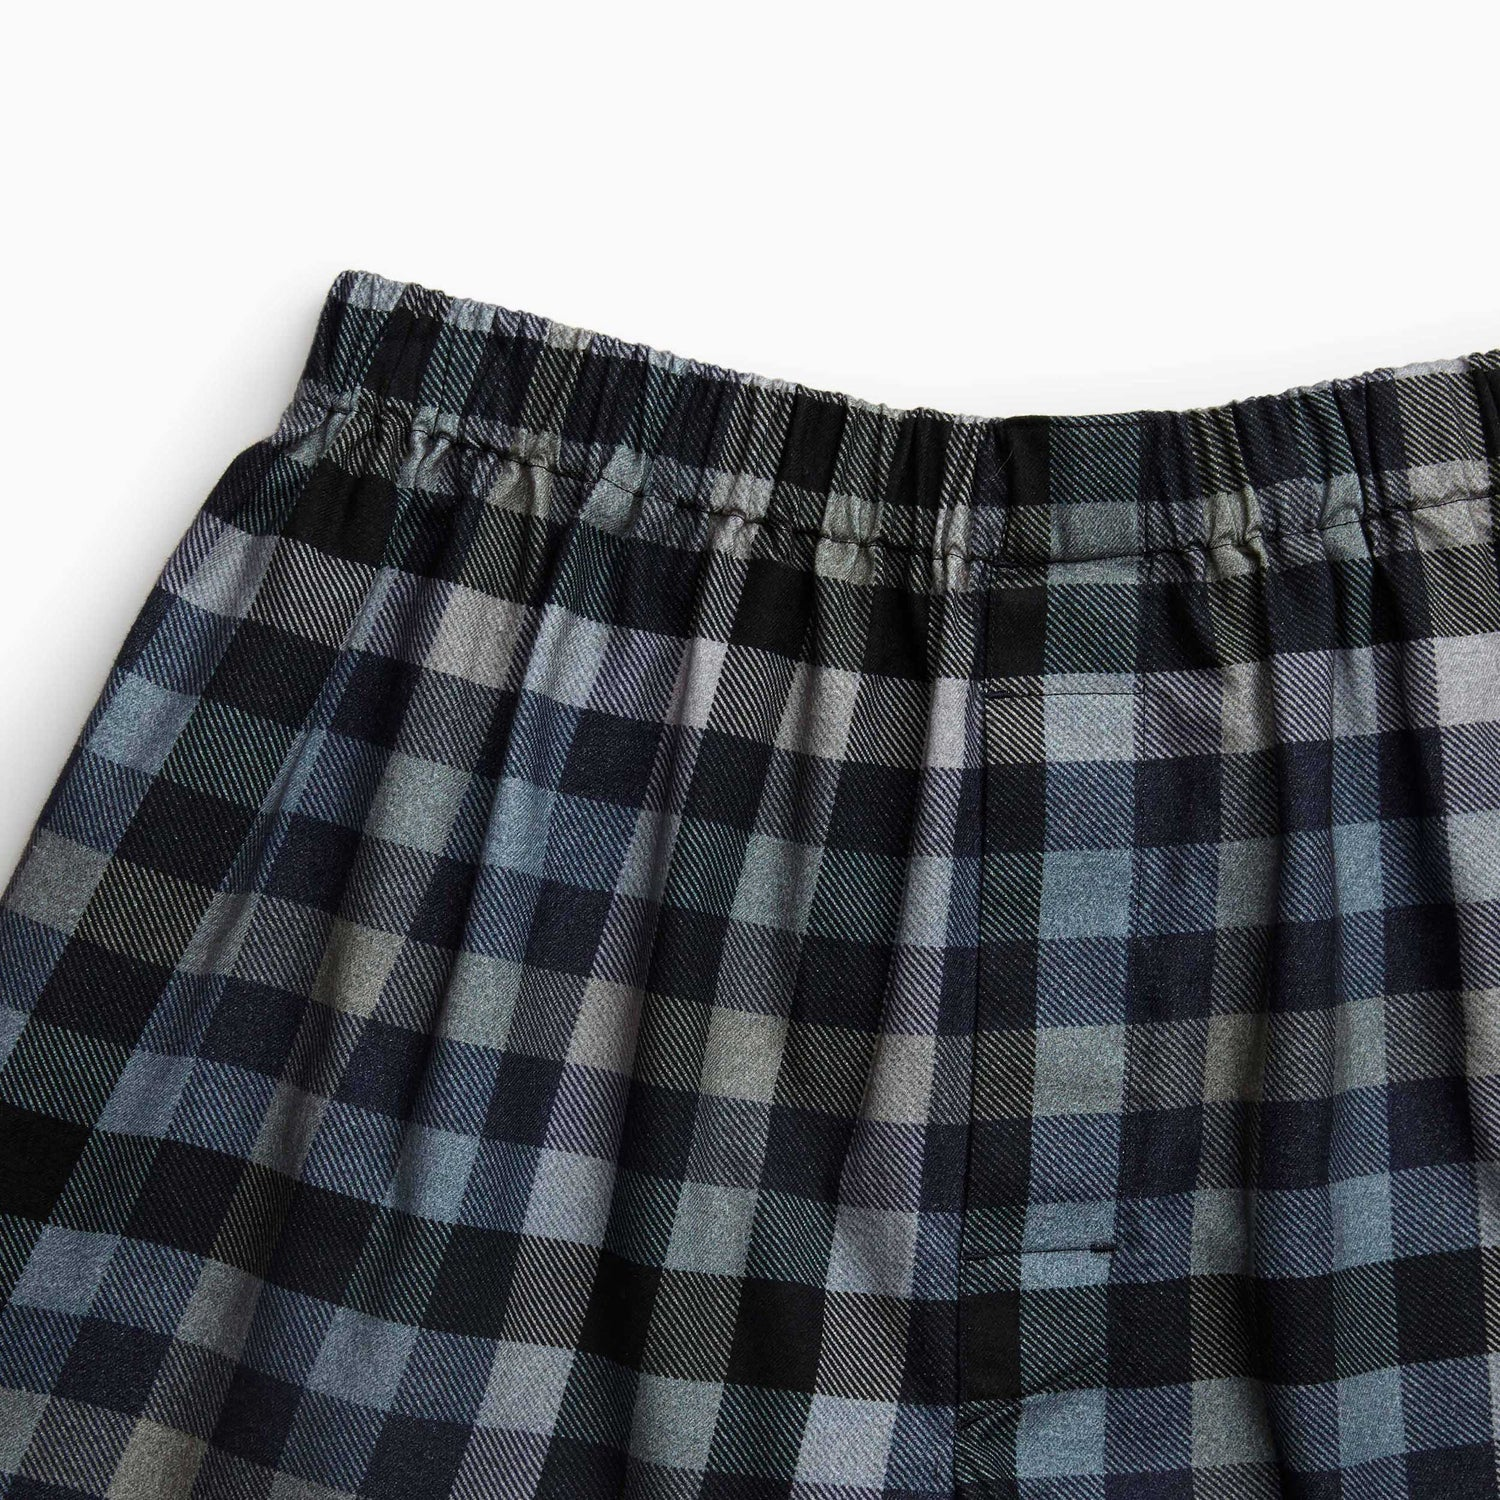 The Navy Working Uniform Flannel Boxers